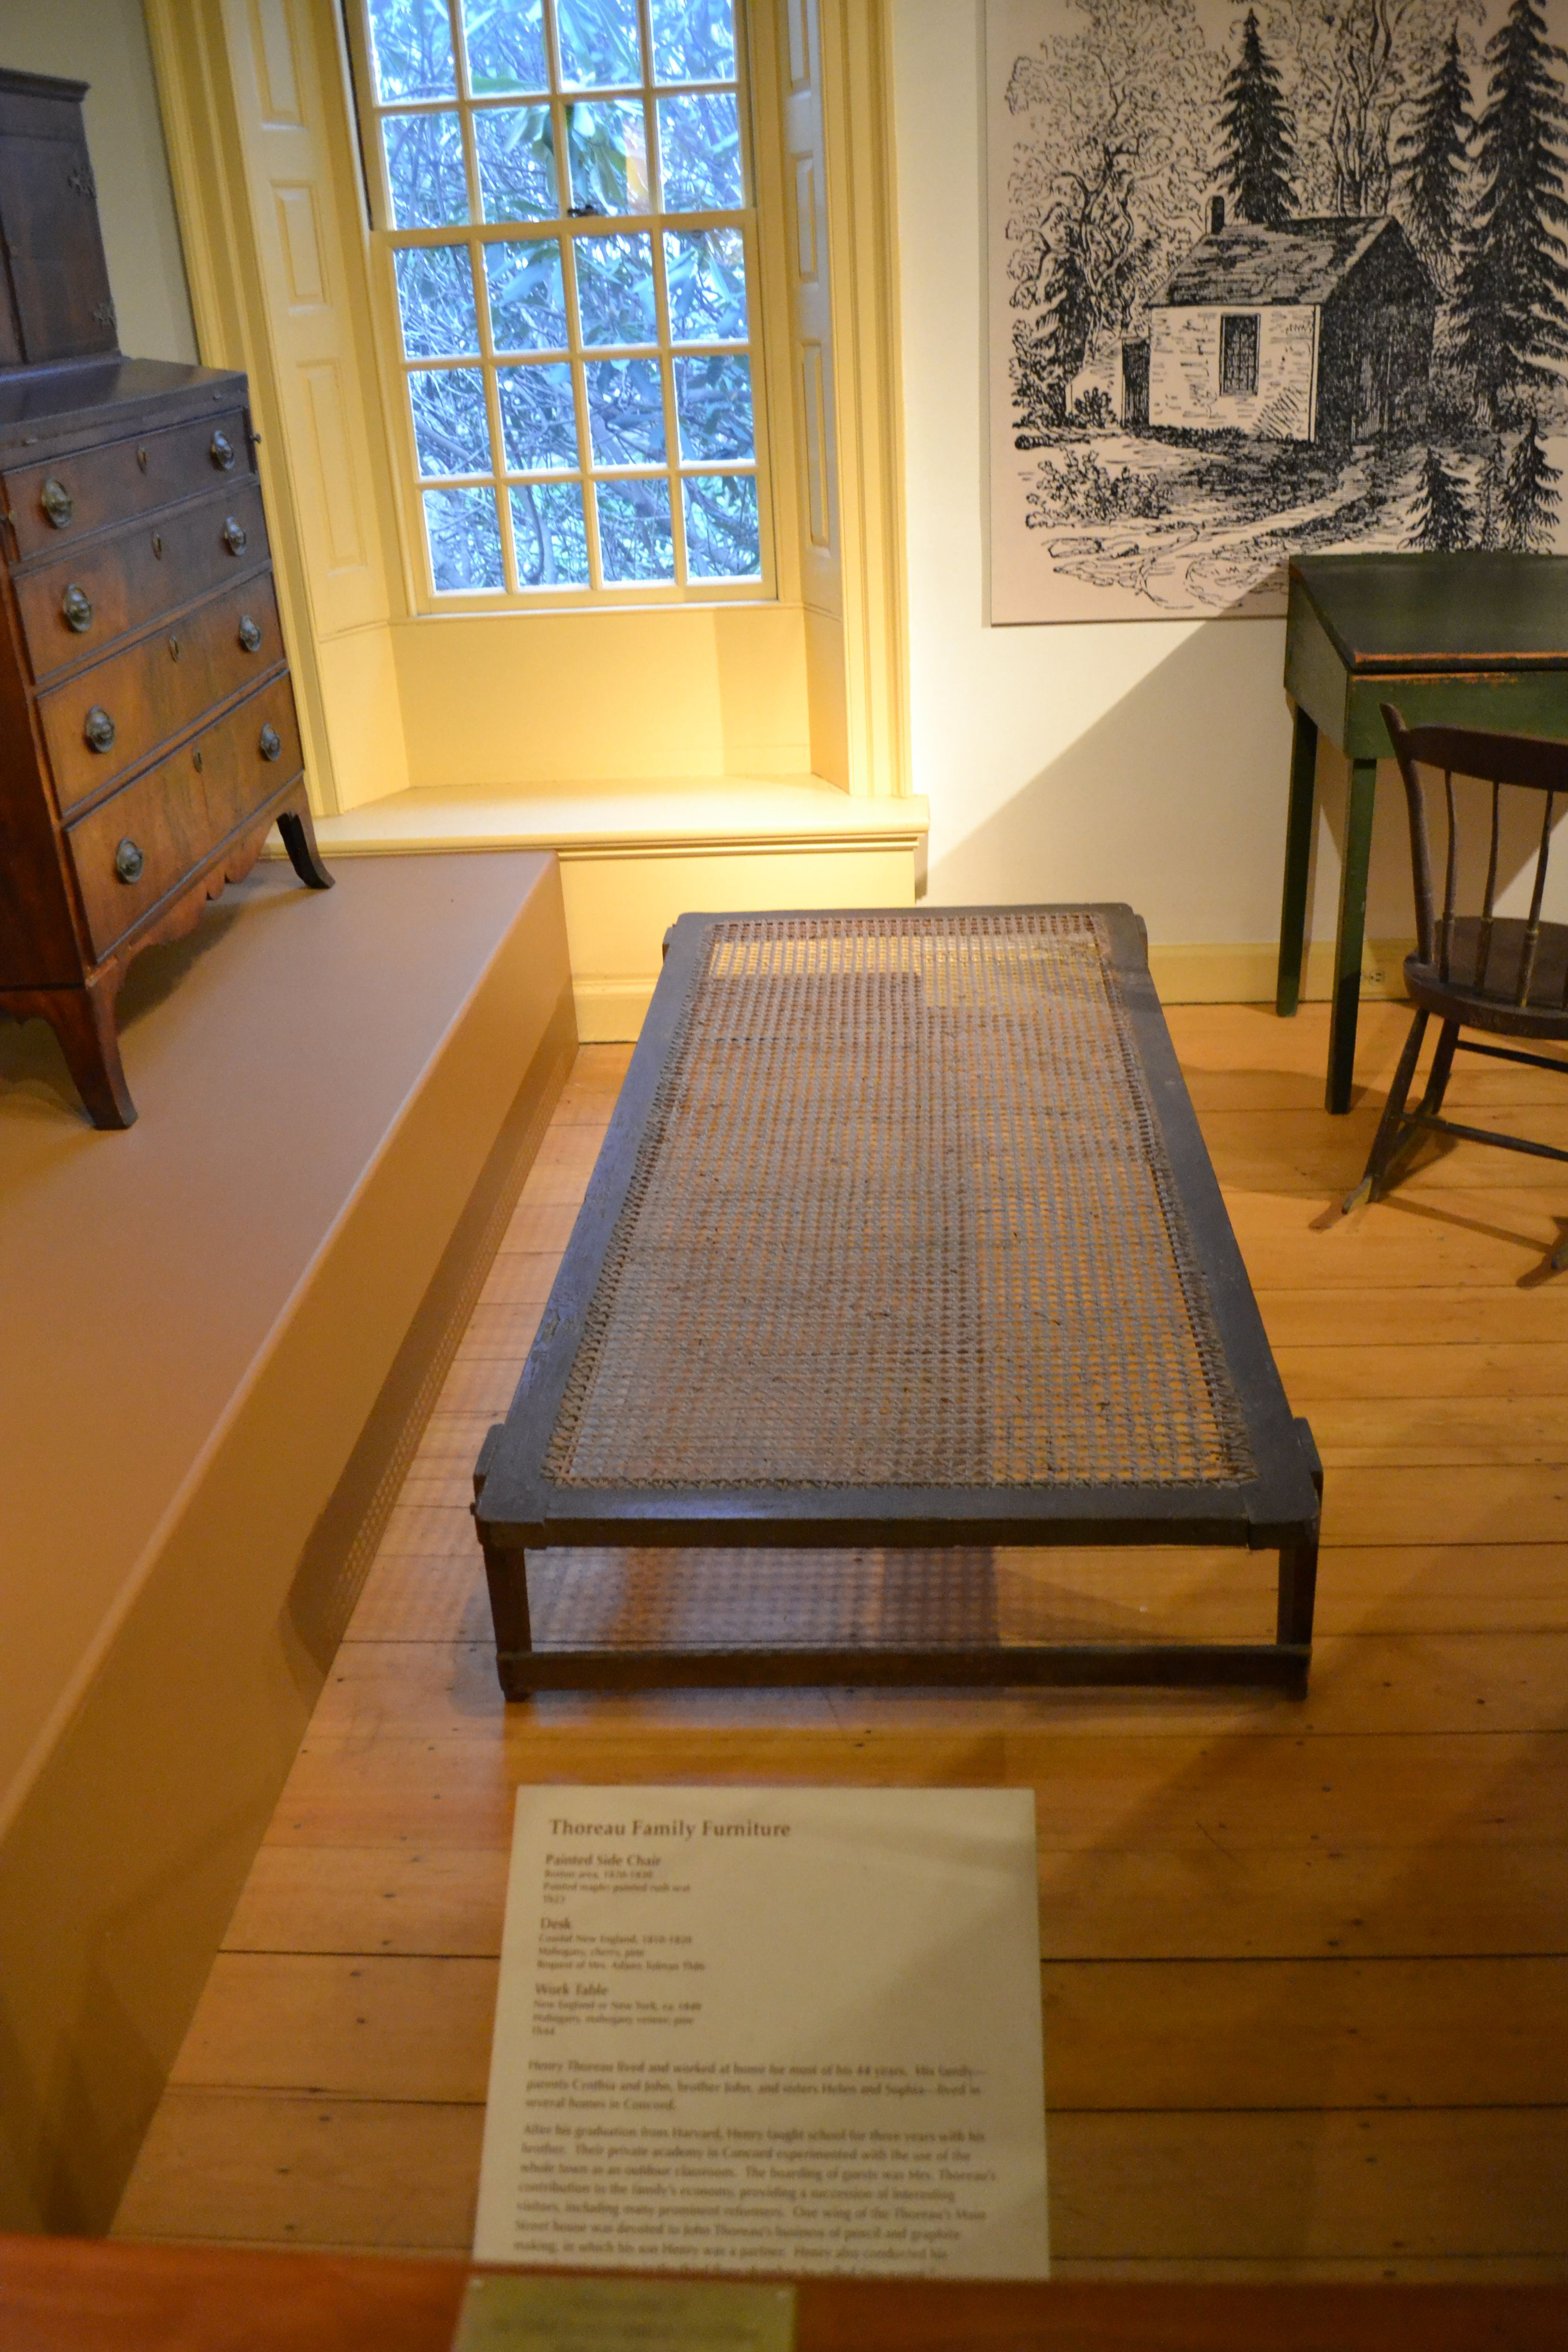 File:Furniture From The House At Walden. Bedstead